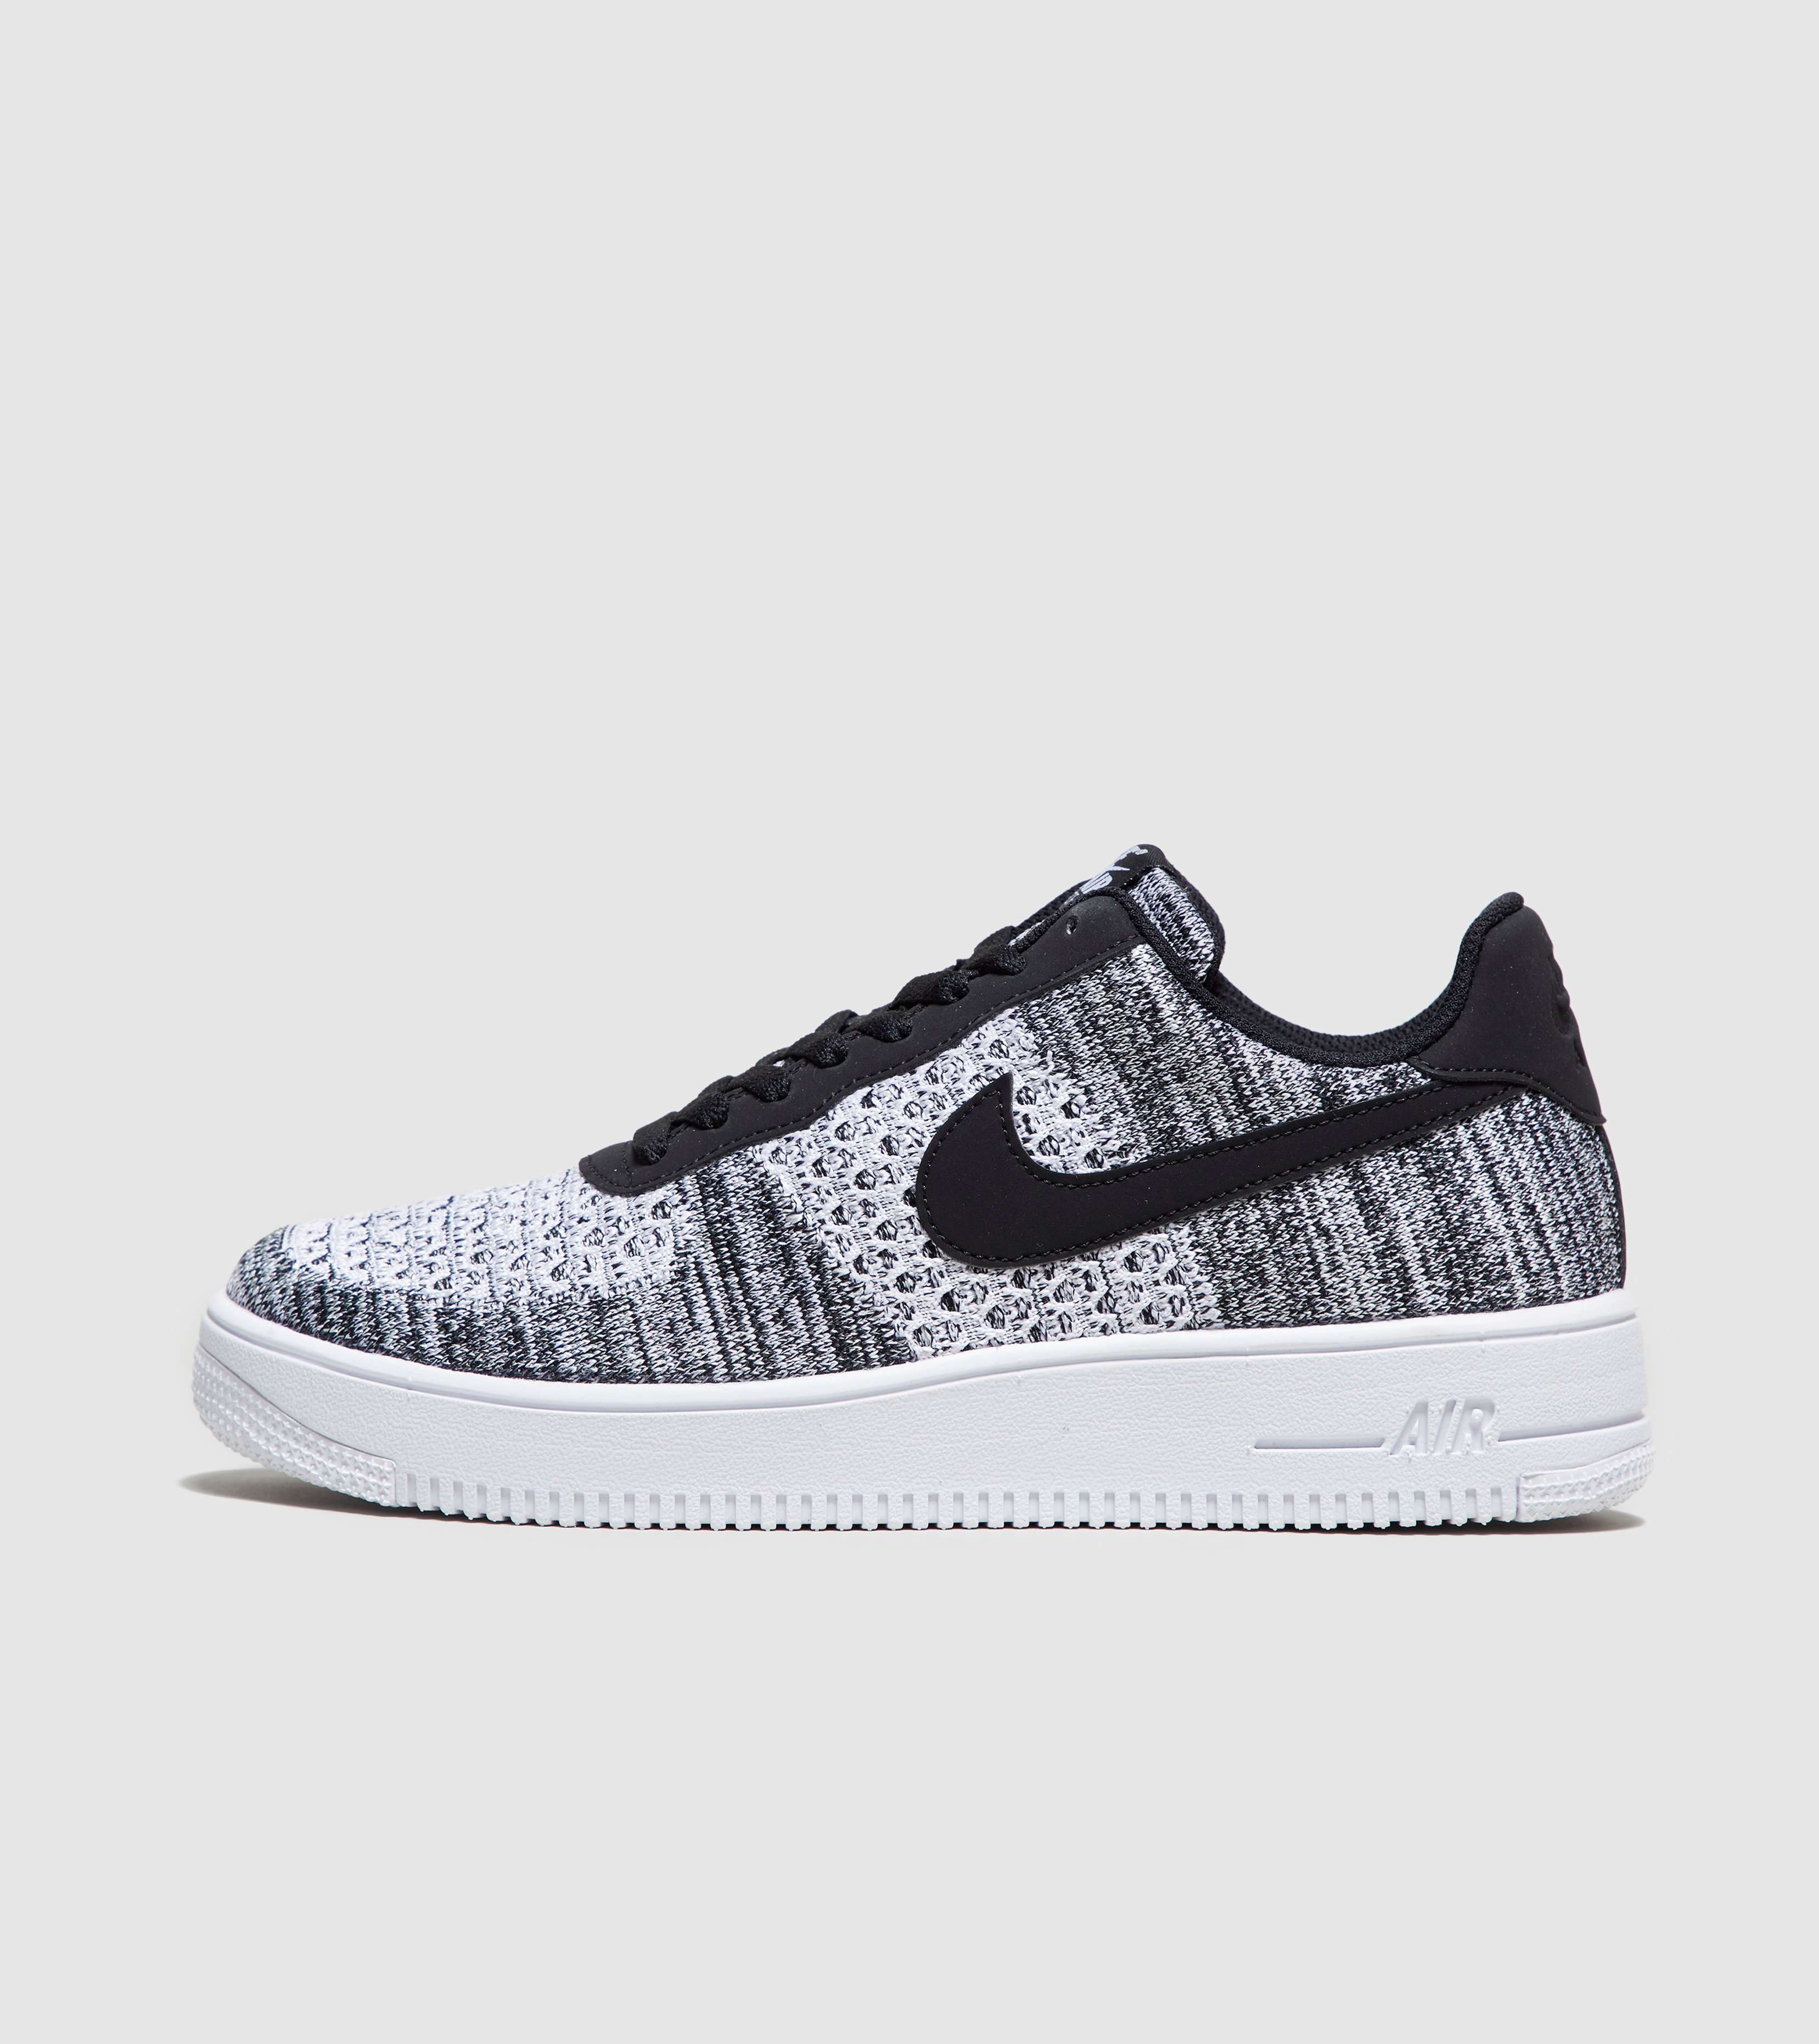 info for 96f6f b6fc8 Nike Air Force 1 Flyknit 2.0 | Size?